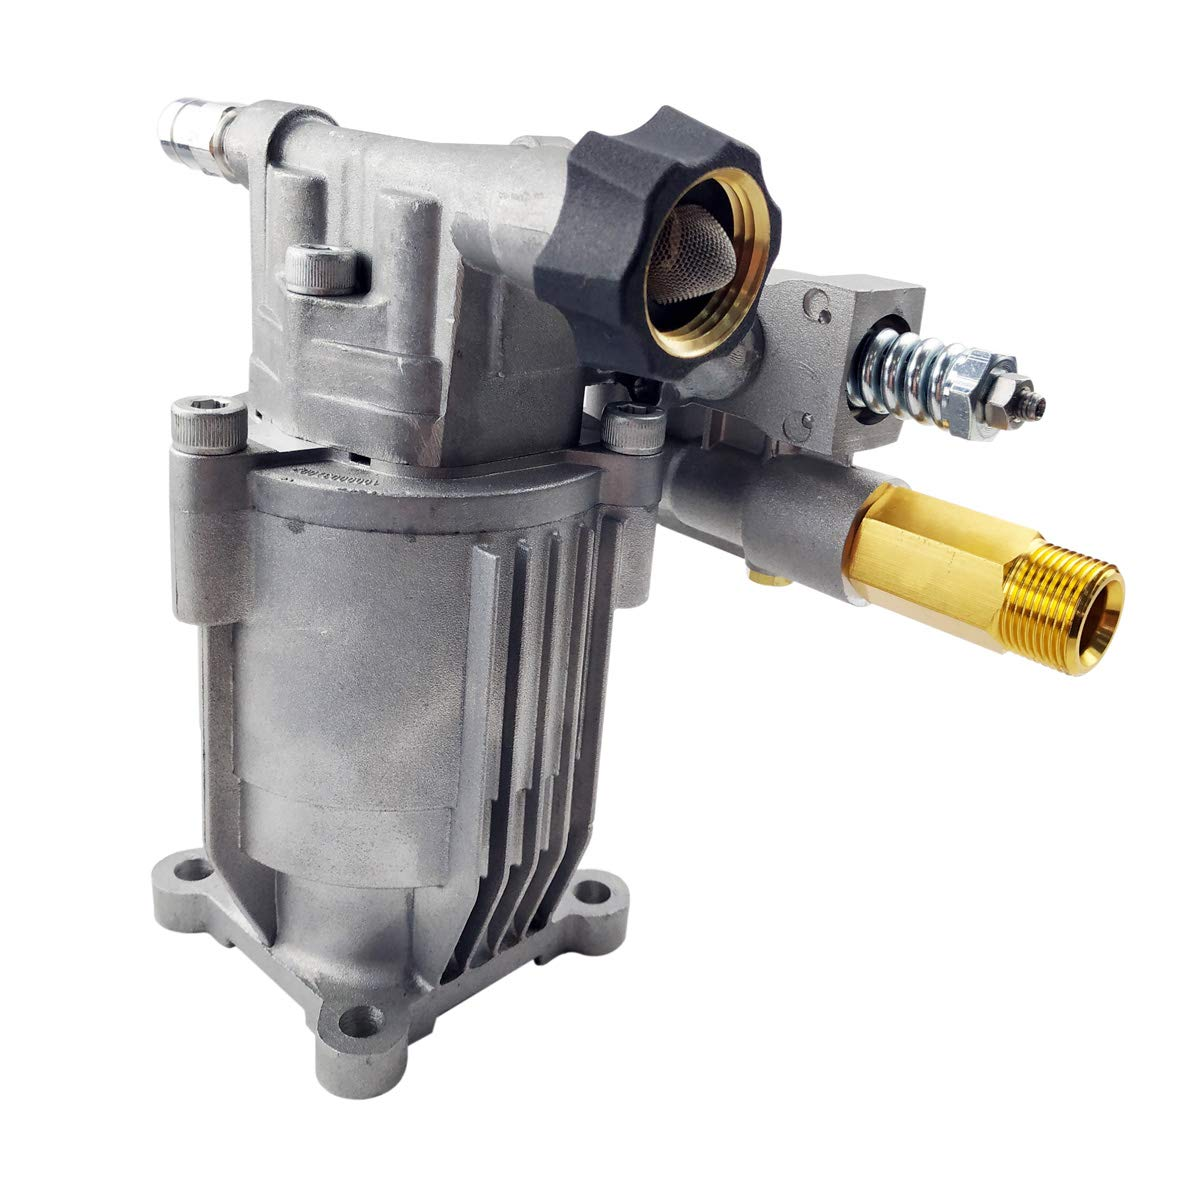 """WISETON STORE OEM Pressure Washer Replacement Pump Horizontal Shaft 2800PSI 2.5GPM, Cold Water Gasoline Pressure Power Washer Pump 3/4"""" Shaft M22 Connectors Brass Head for Most Brand"""